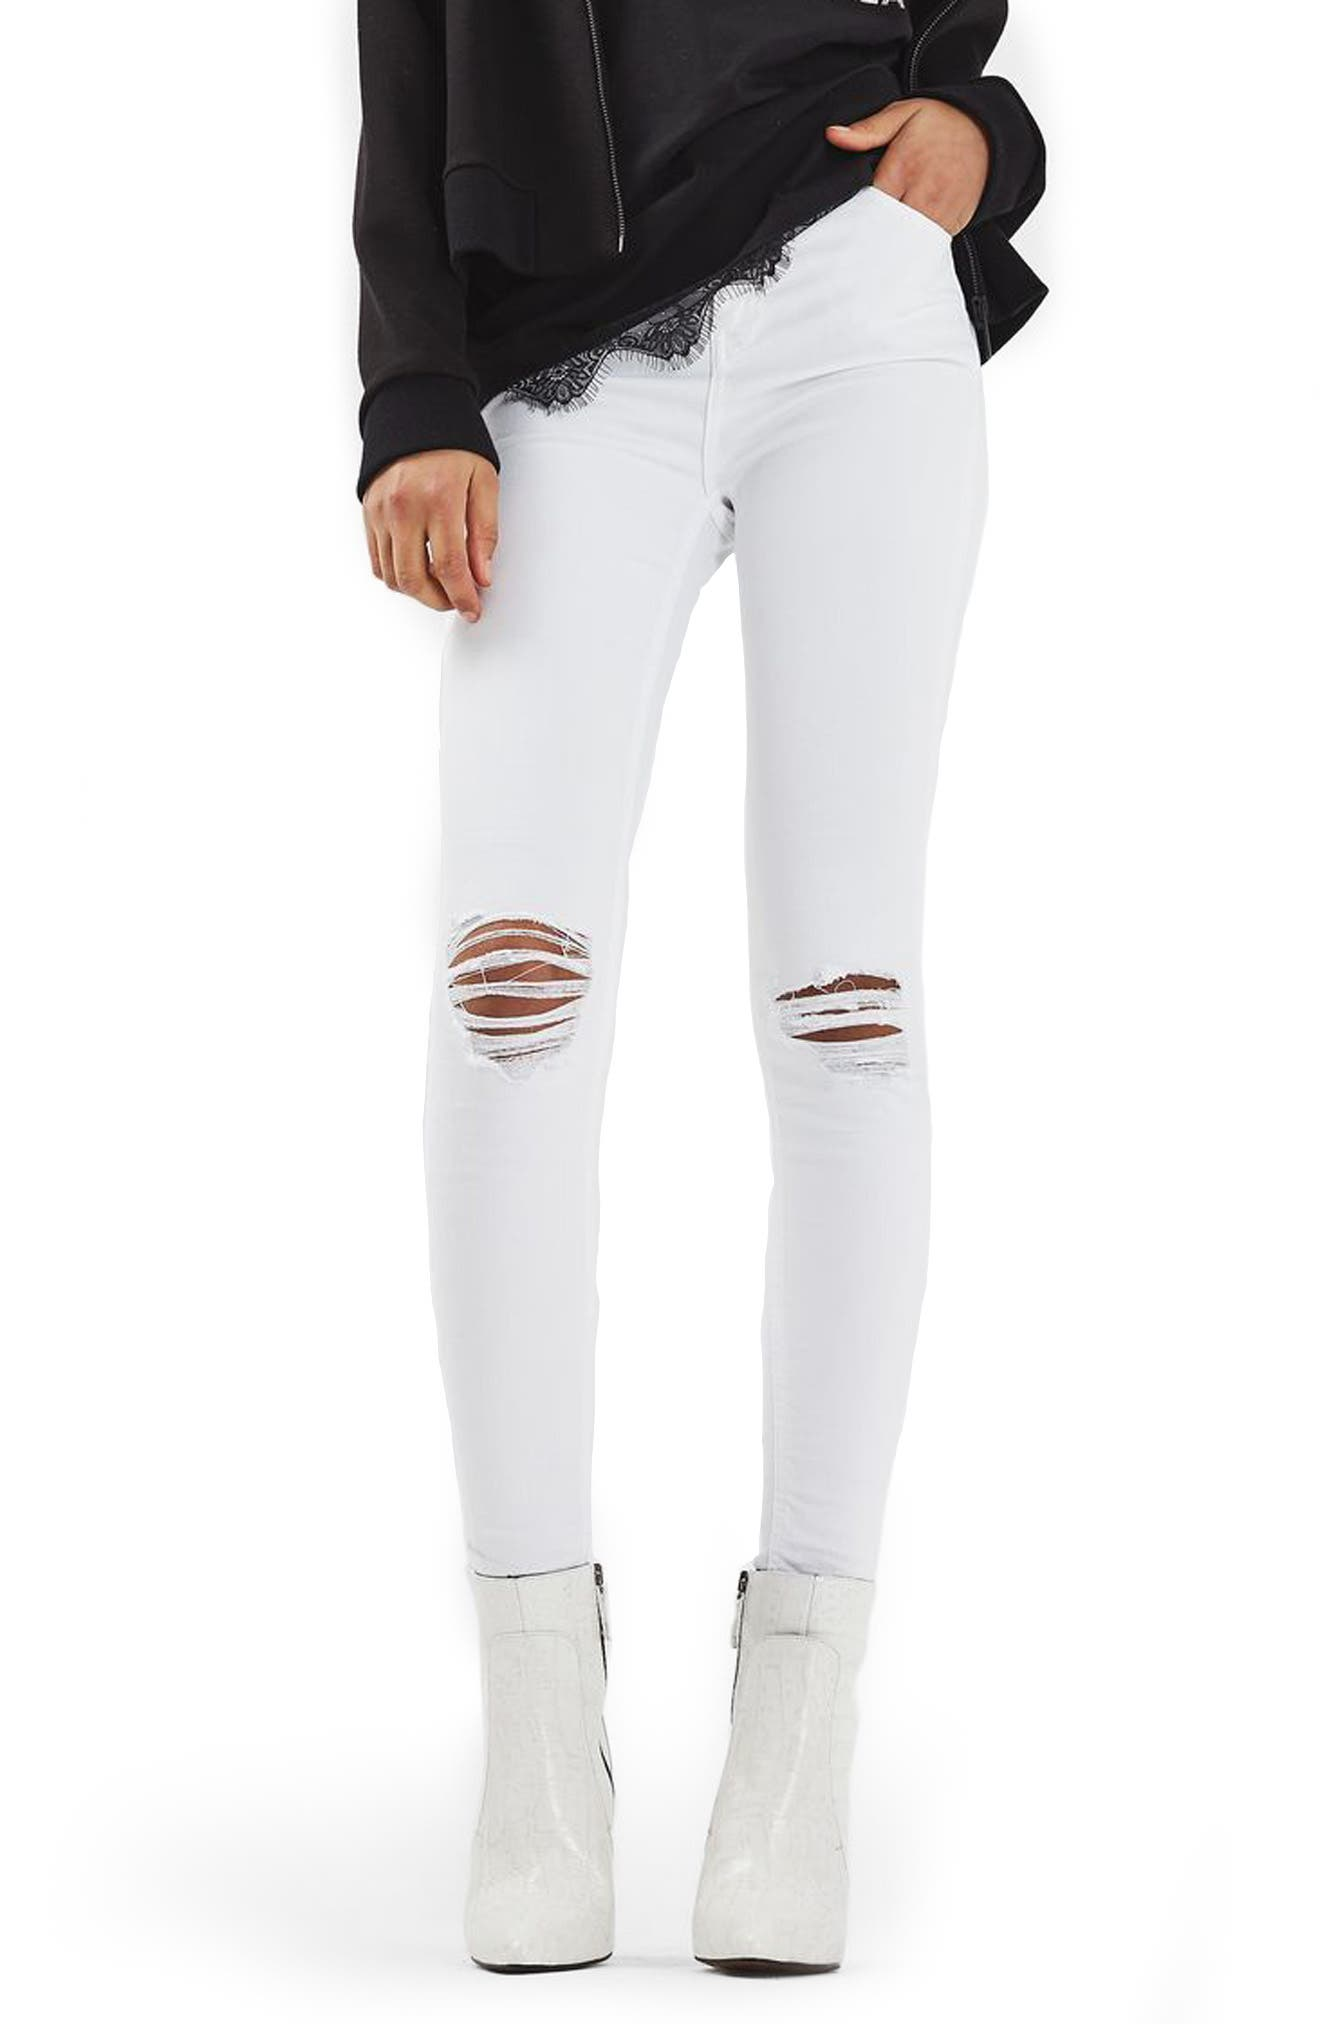 Jamie Ripped Skinny Jeans,                         Main,                         color, White